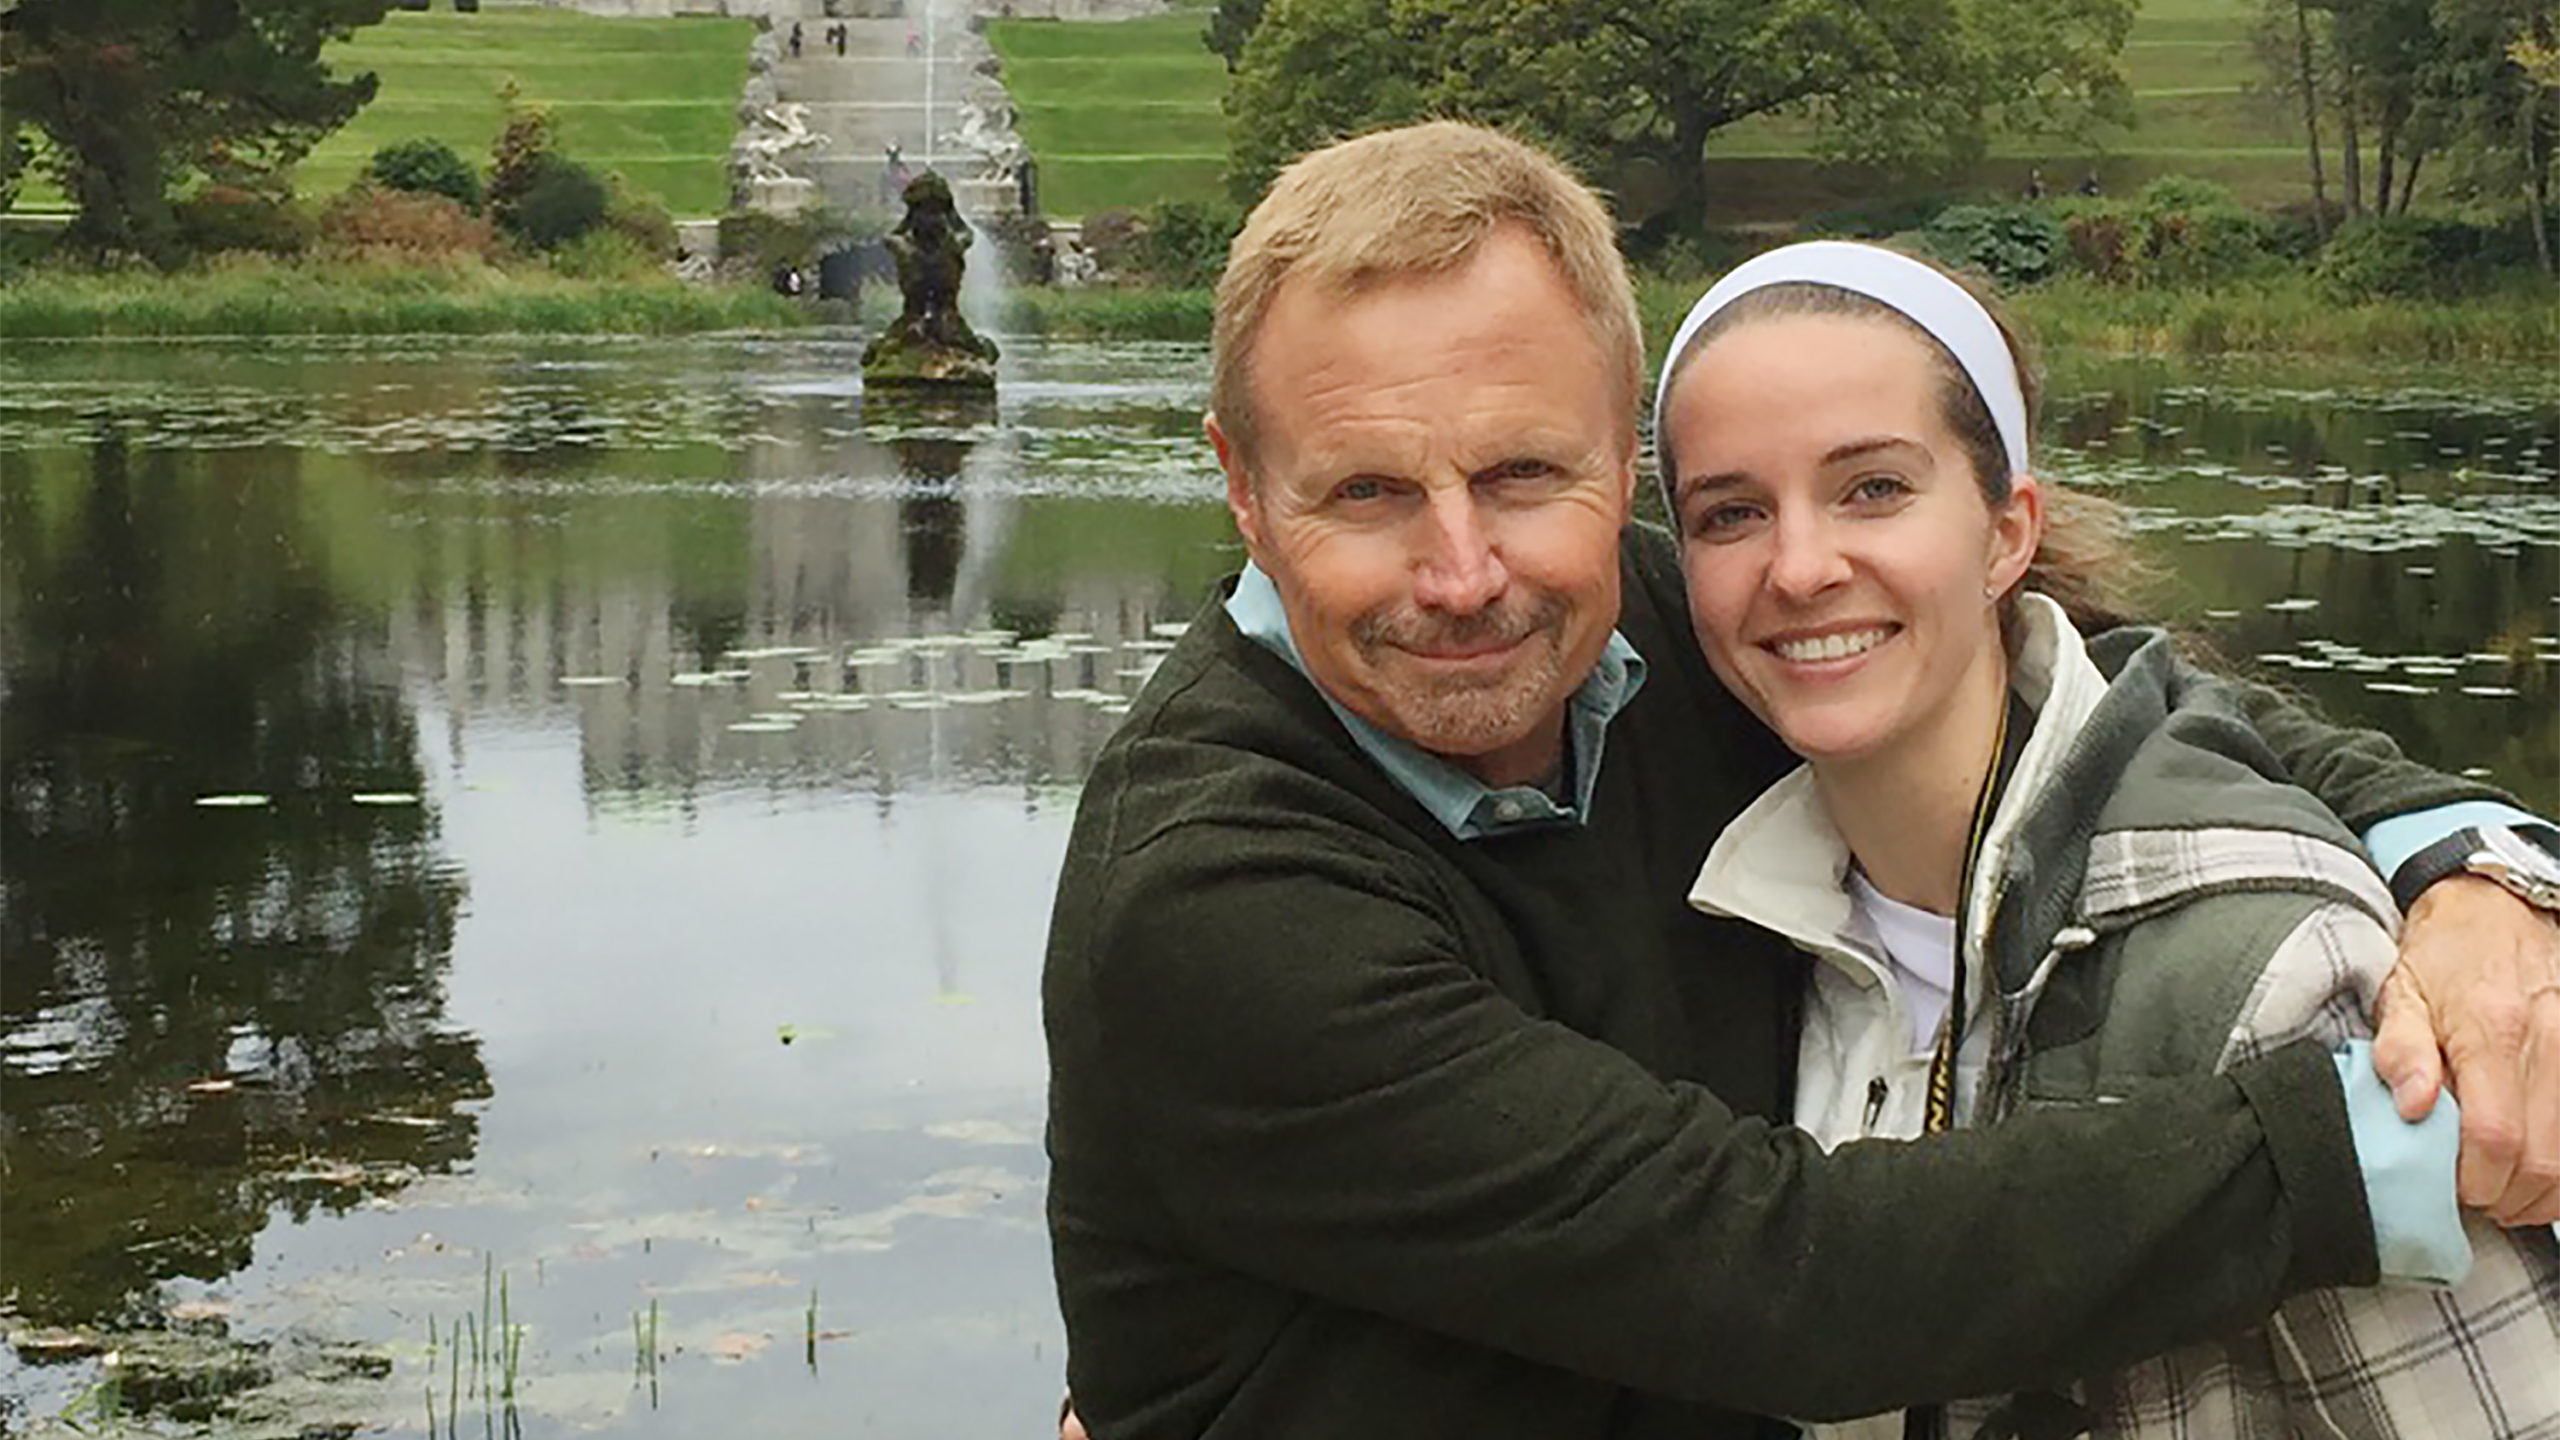 Stephen Arterburn with his daughter, Madeline